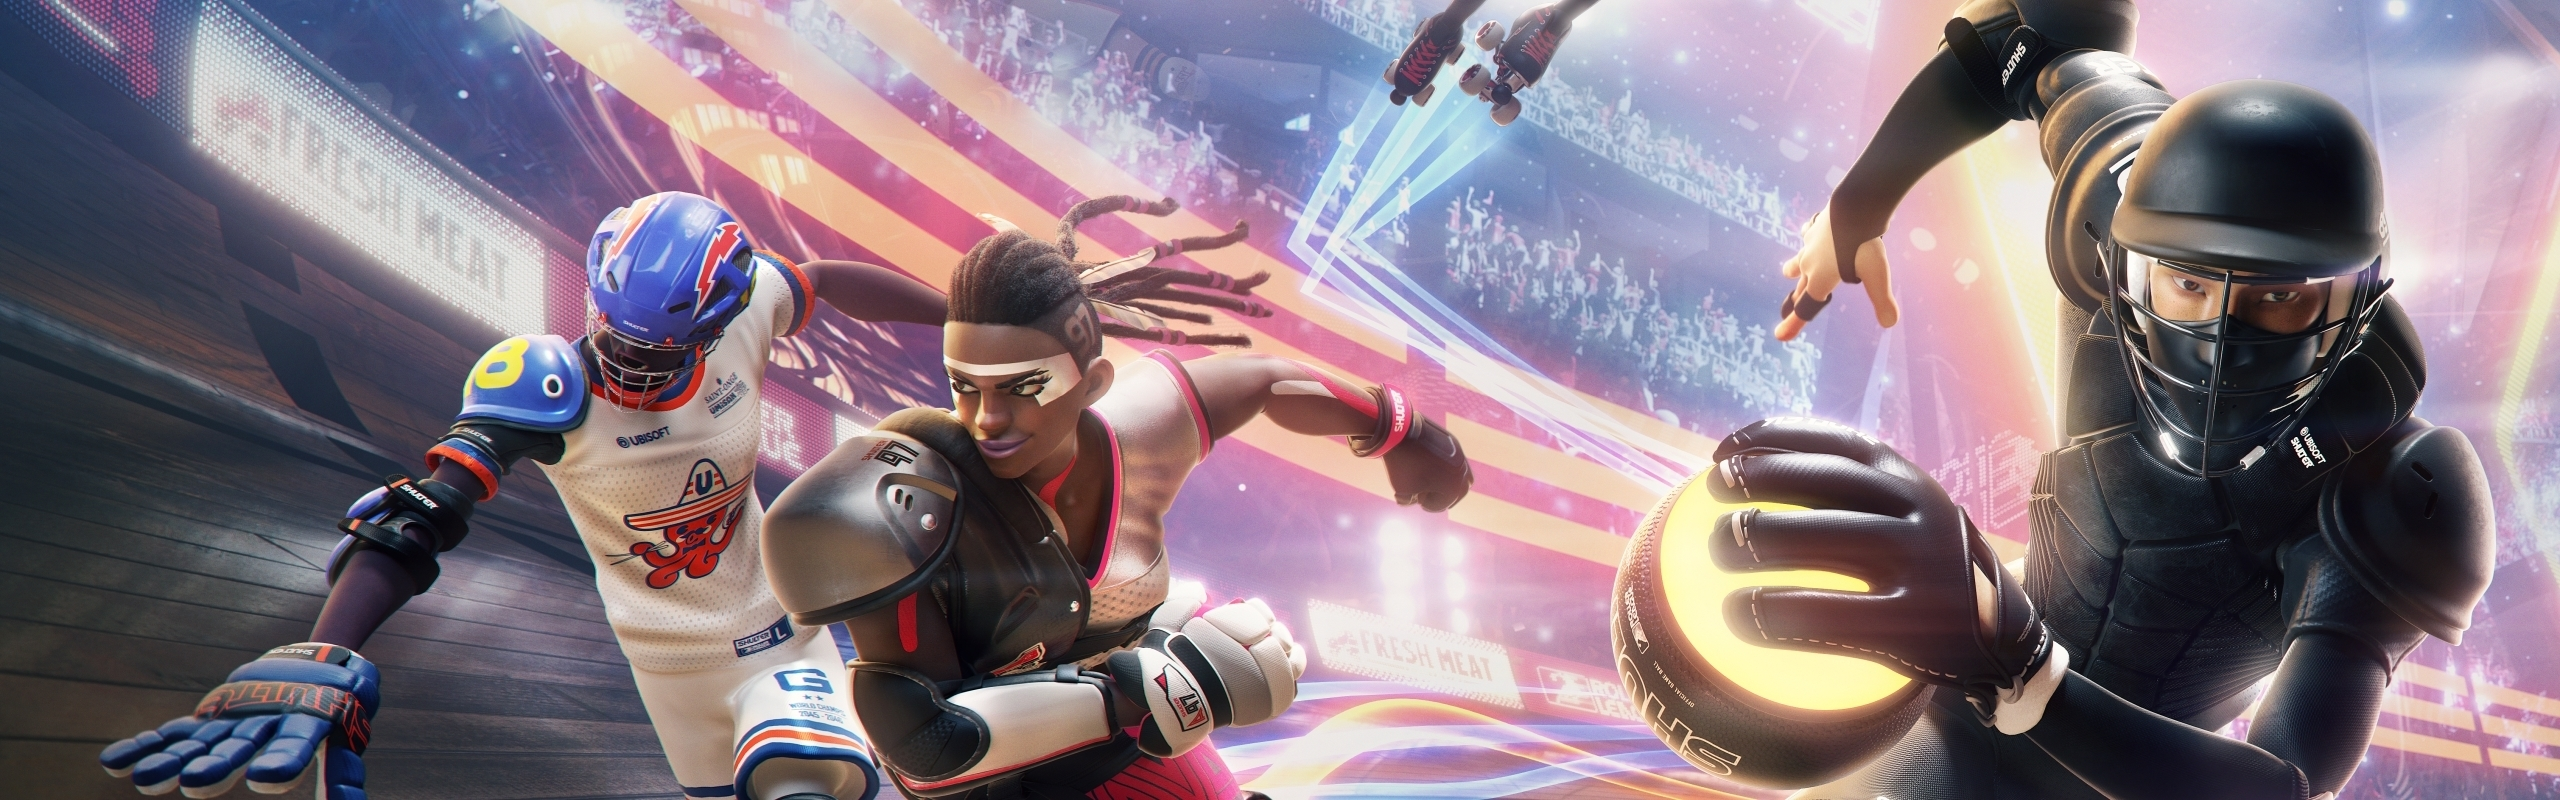 Roller Champions - E-sportgame preview by design